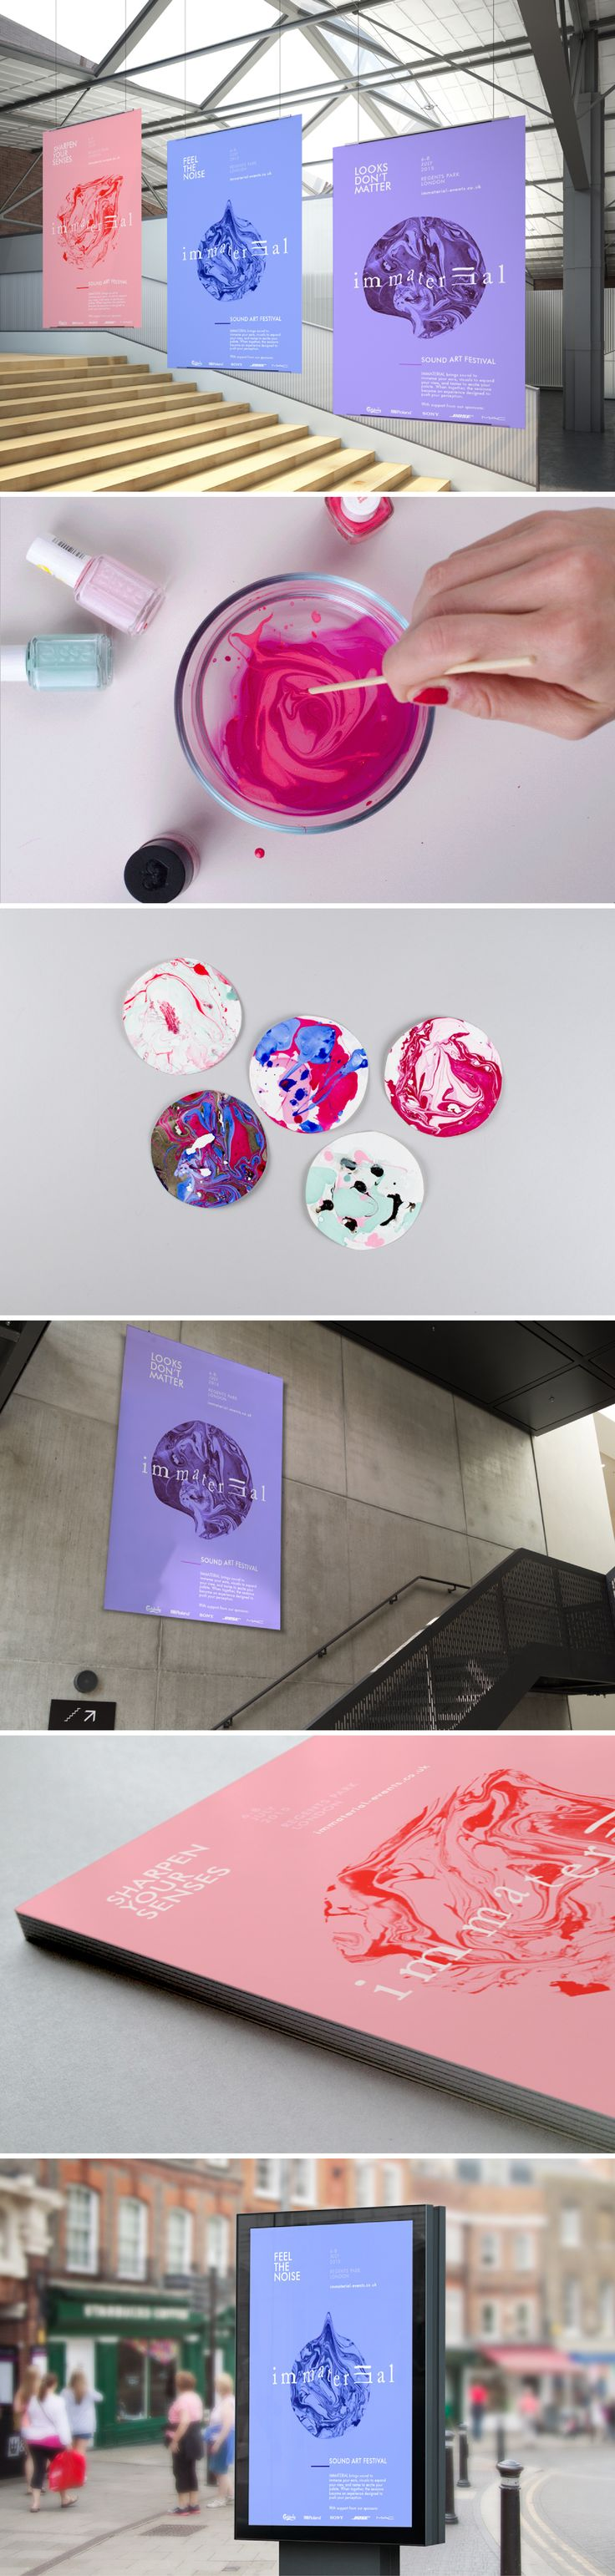 Graphic Design - Institutional identity inspiration - Exposition